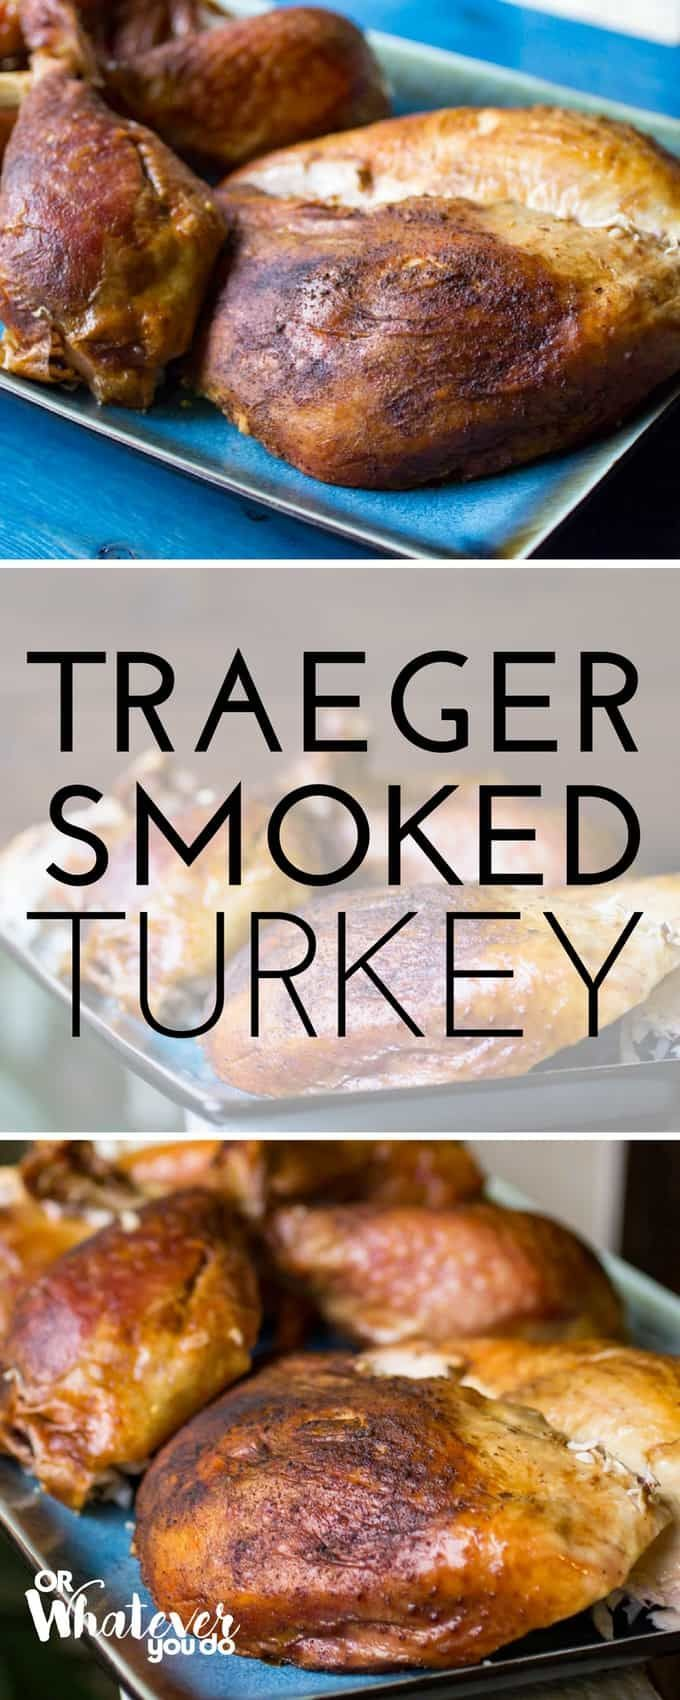 Traeger Smoked Turkey is going to quickly become your new favorite turkey method. Put away the gallons of oil, free up your oven, and go ahead and donate that giant electric roaster that you only pull out once a year to someone else, because you're going to want smoked Traeger turkey every year. #bhgfood #buzzfeast #buzzfeedfood #cookinglight #delicious #dining #eeeats #eeeeeats #f52grams #feedfeed #food52 #food52gram #foodblogeats #foodbloggeed #foodblogger #foodgawker #foodie #foodlove…